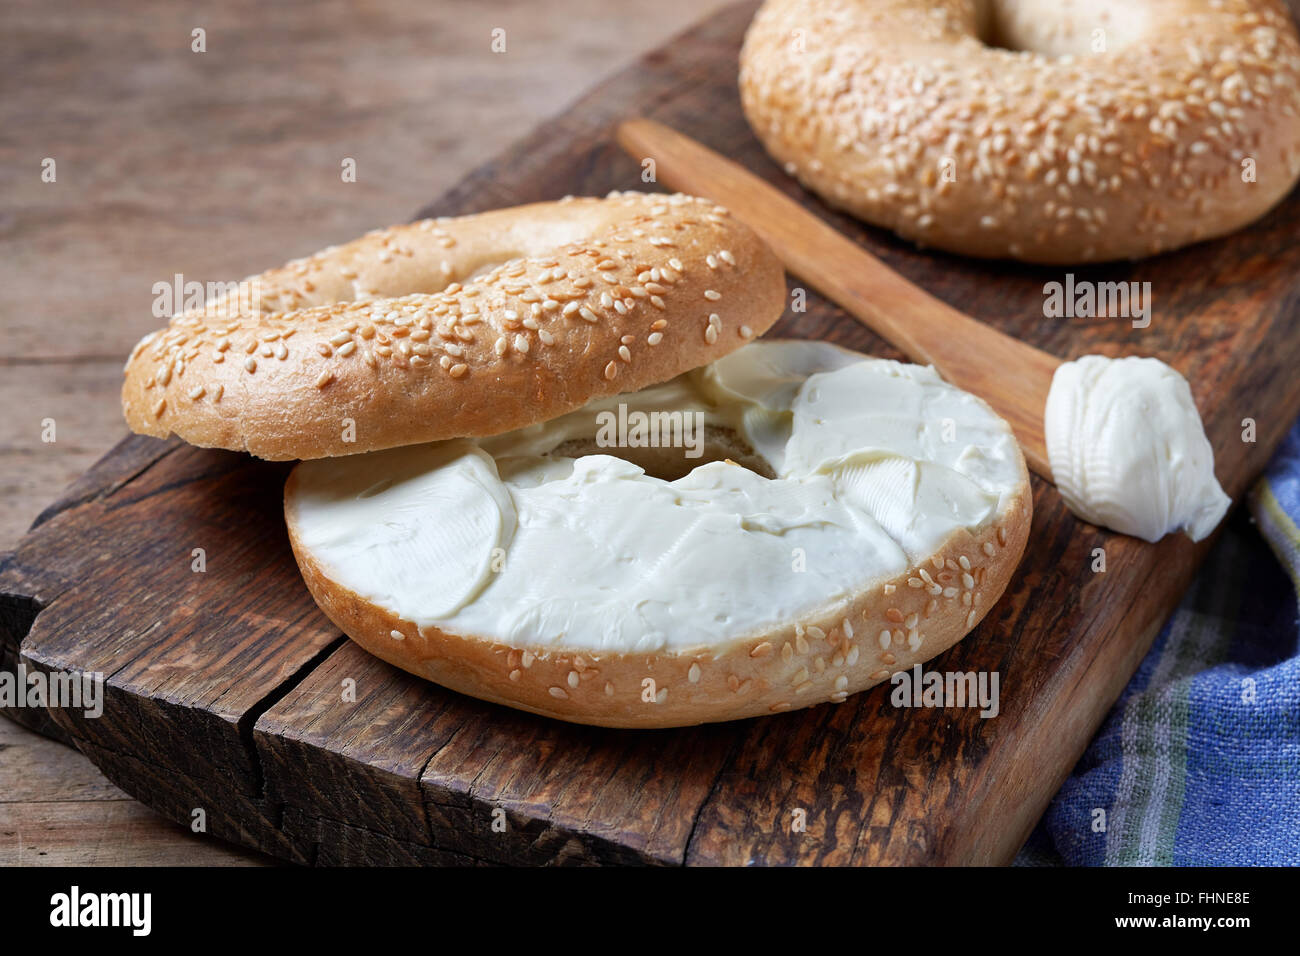 Bagel with cream cheese on wooden table - Stock Image